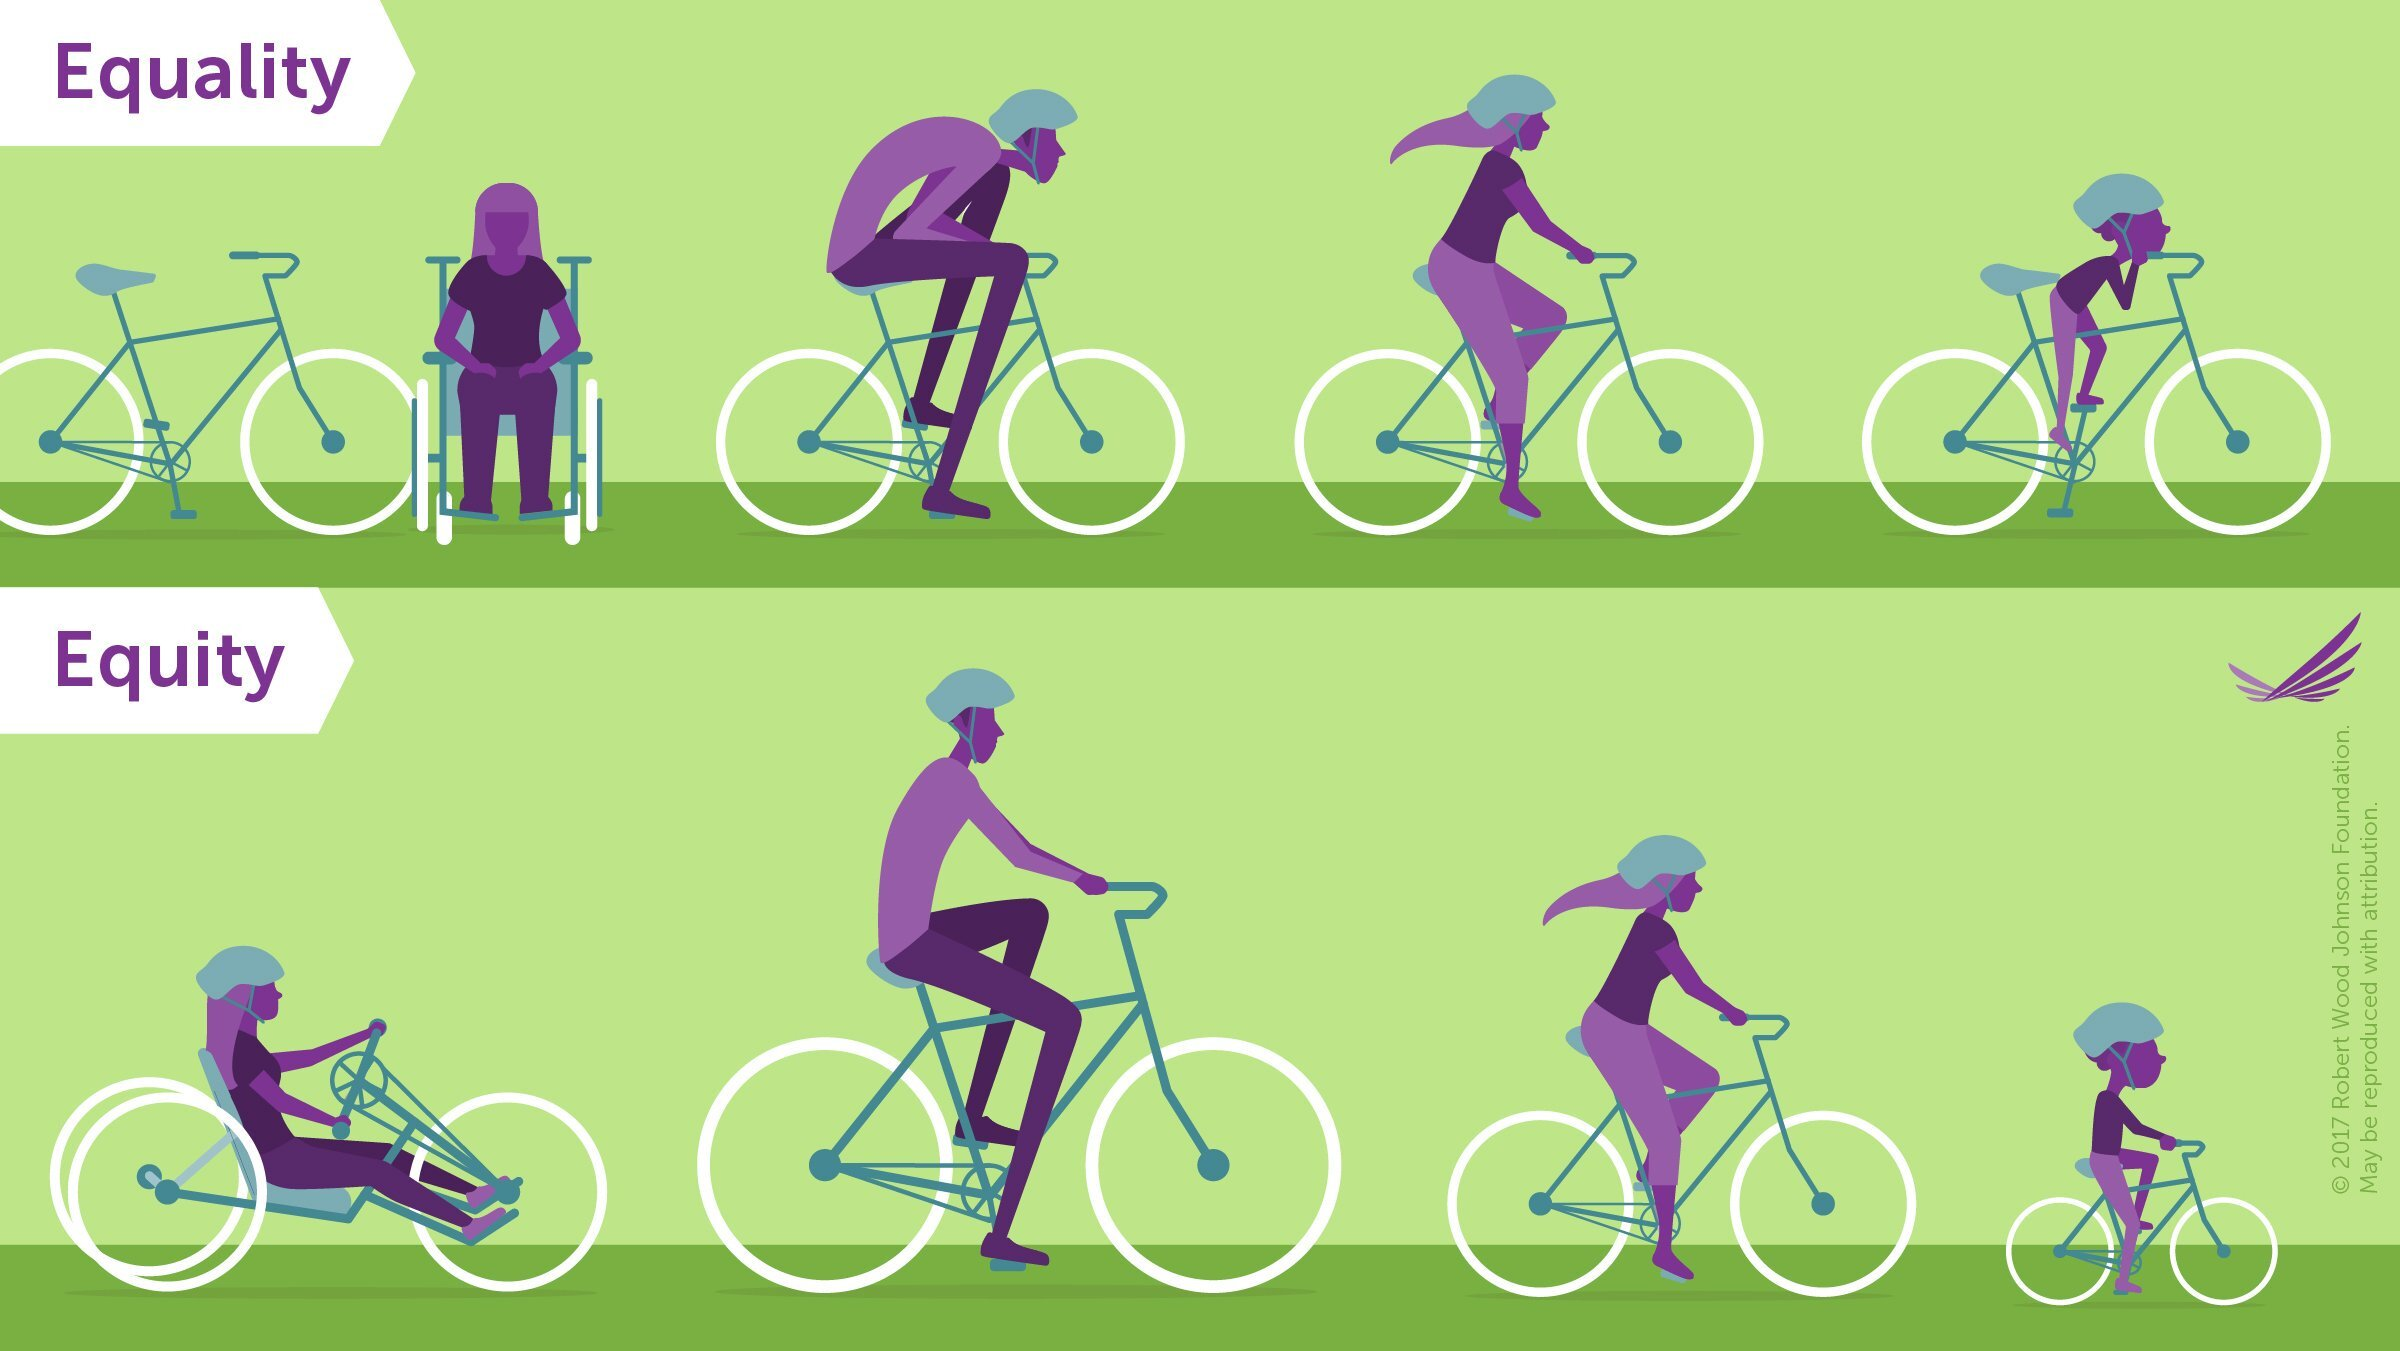 Biking is for nearly everyone!  Let's make it easy for all who wish to bike to do so.